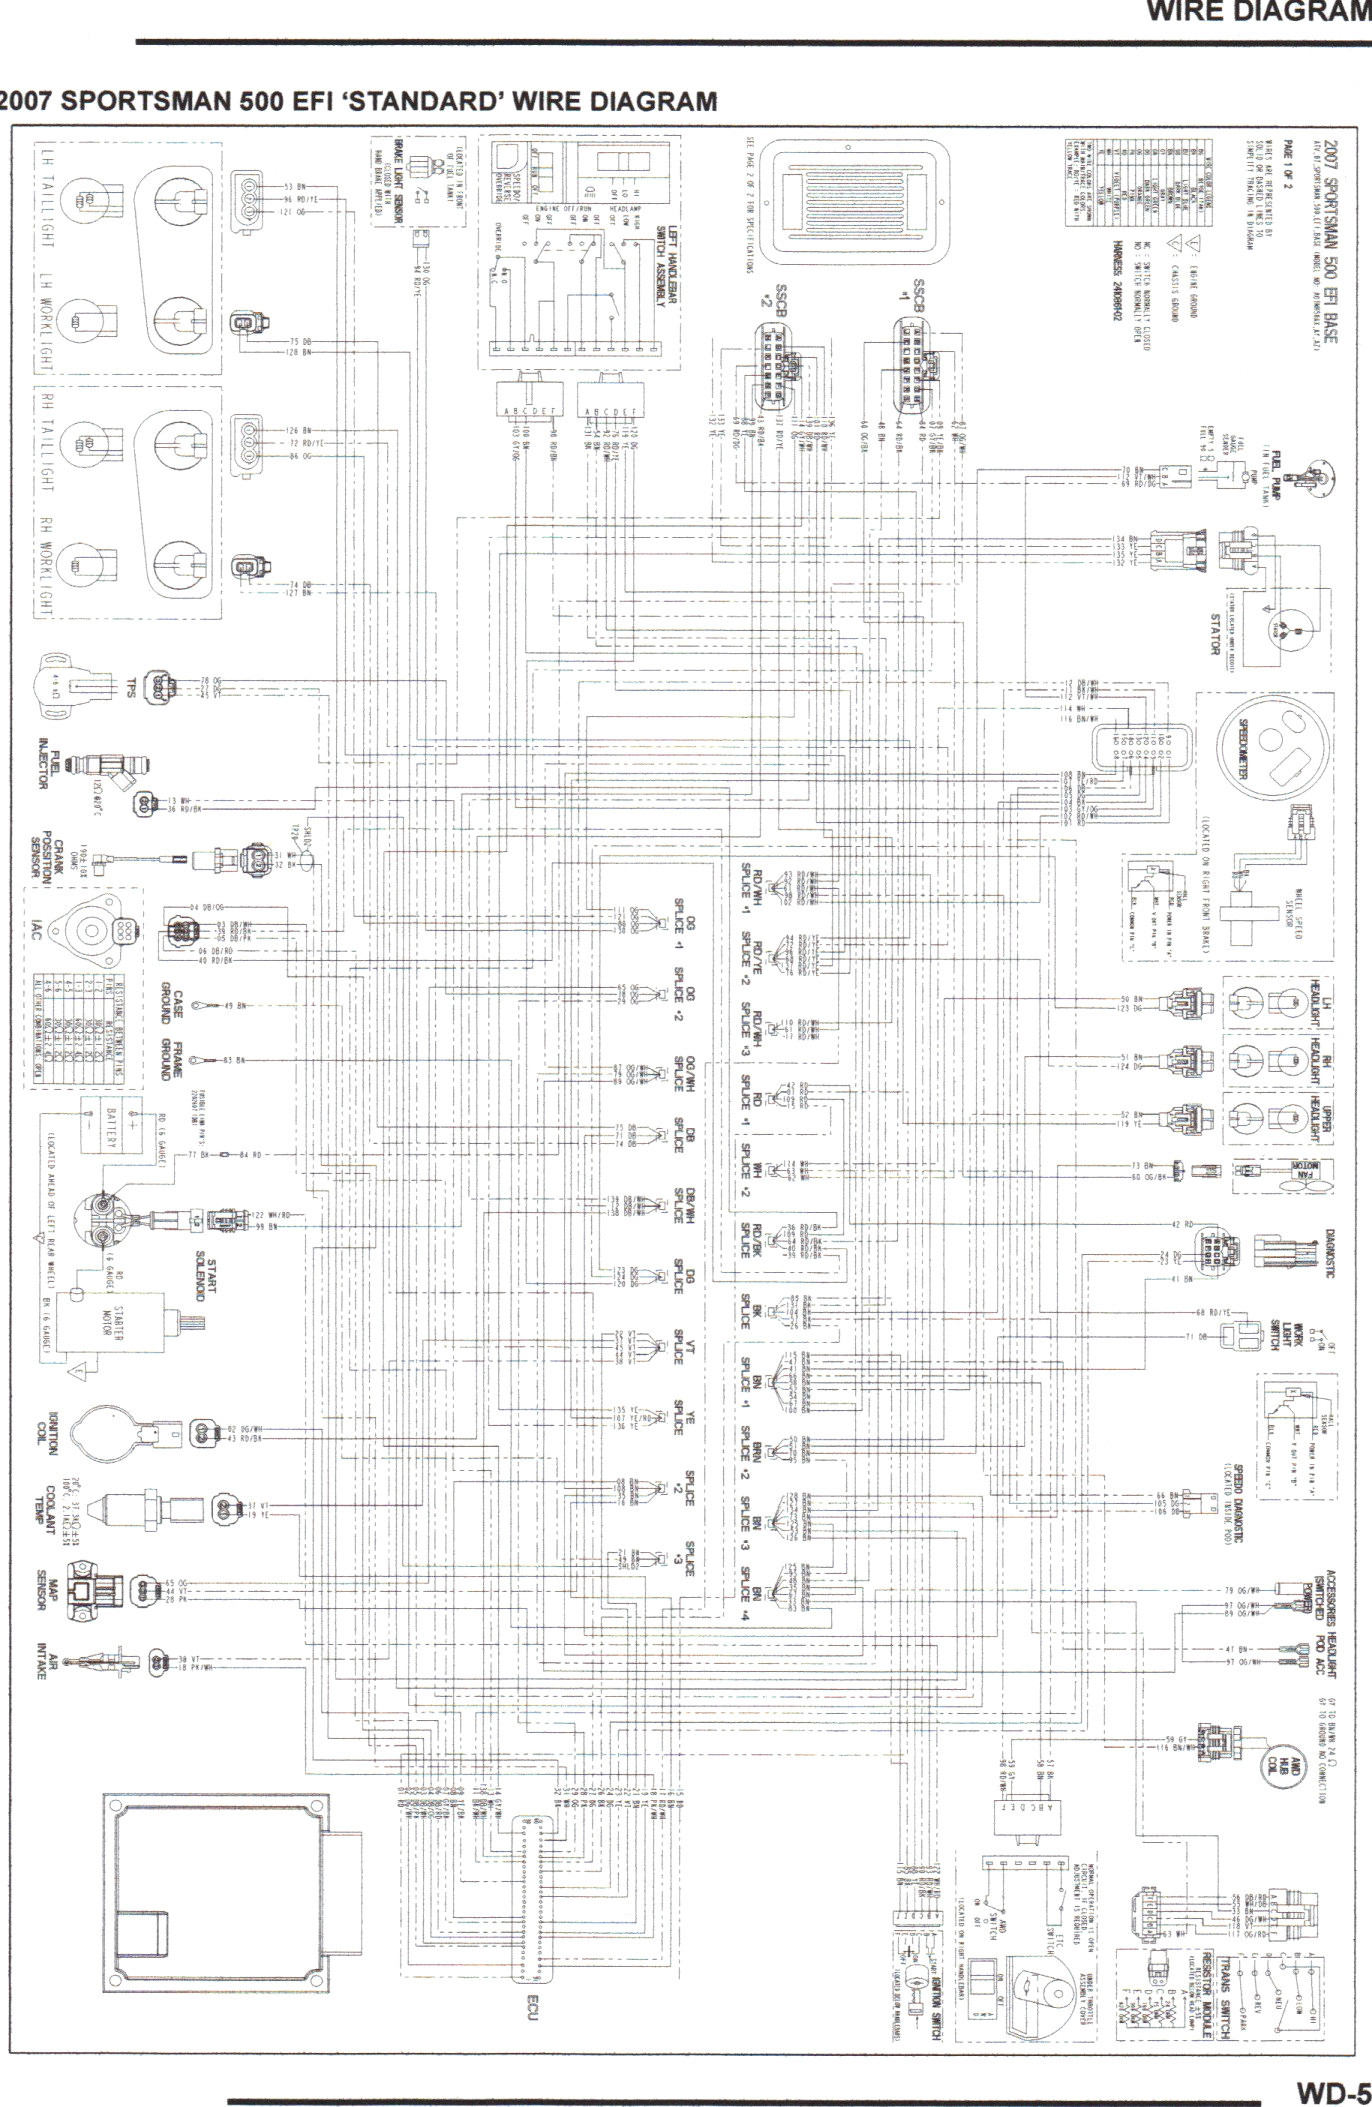 2004 polaris sportsman 400 wiring diagram sample sukup wiring diagram 2004 polaris  sportsman 400 wiring diagram